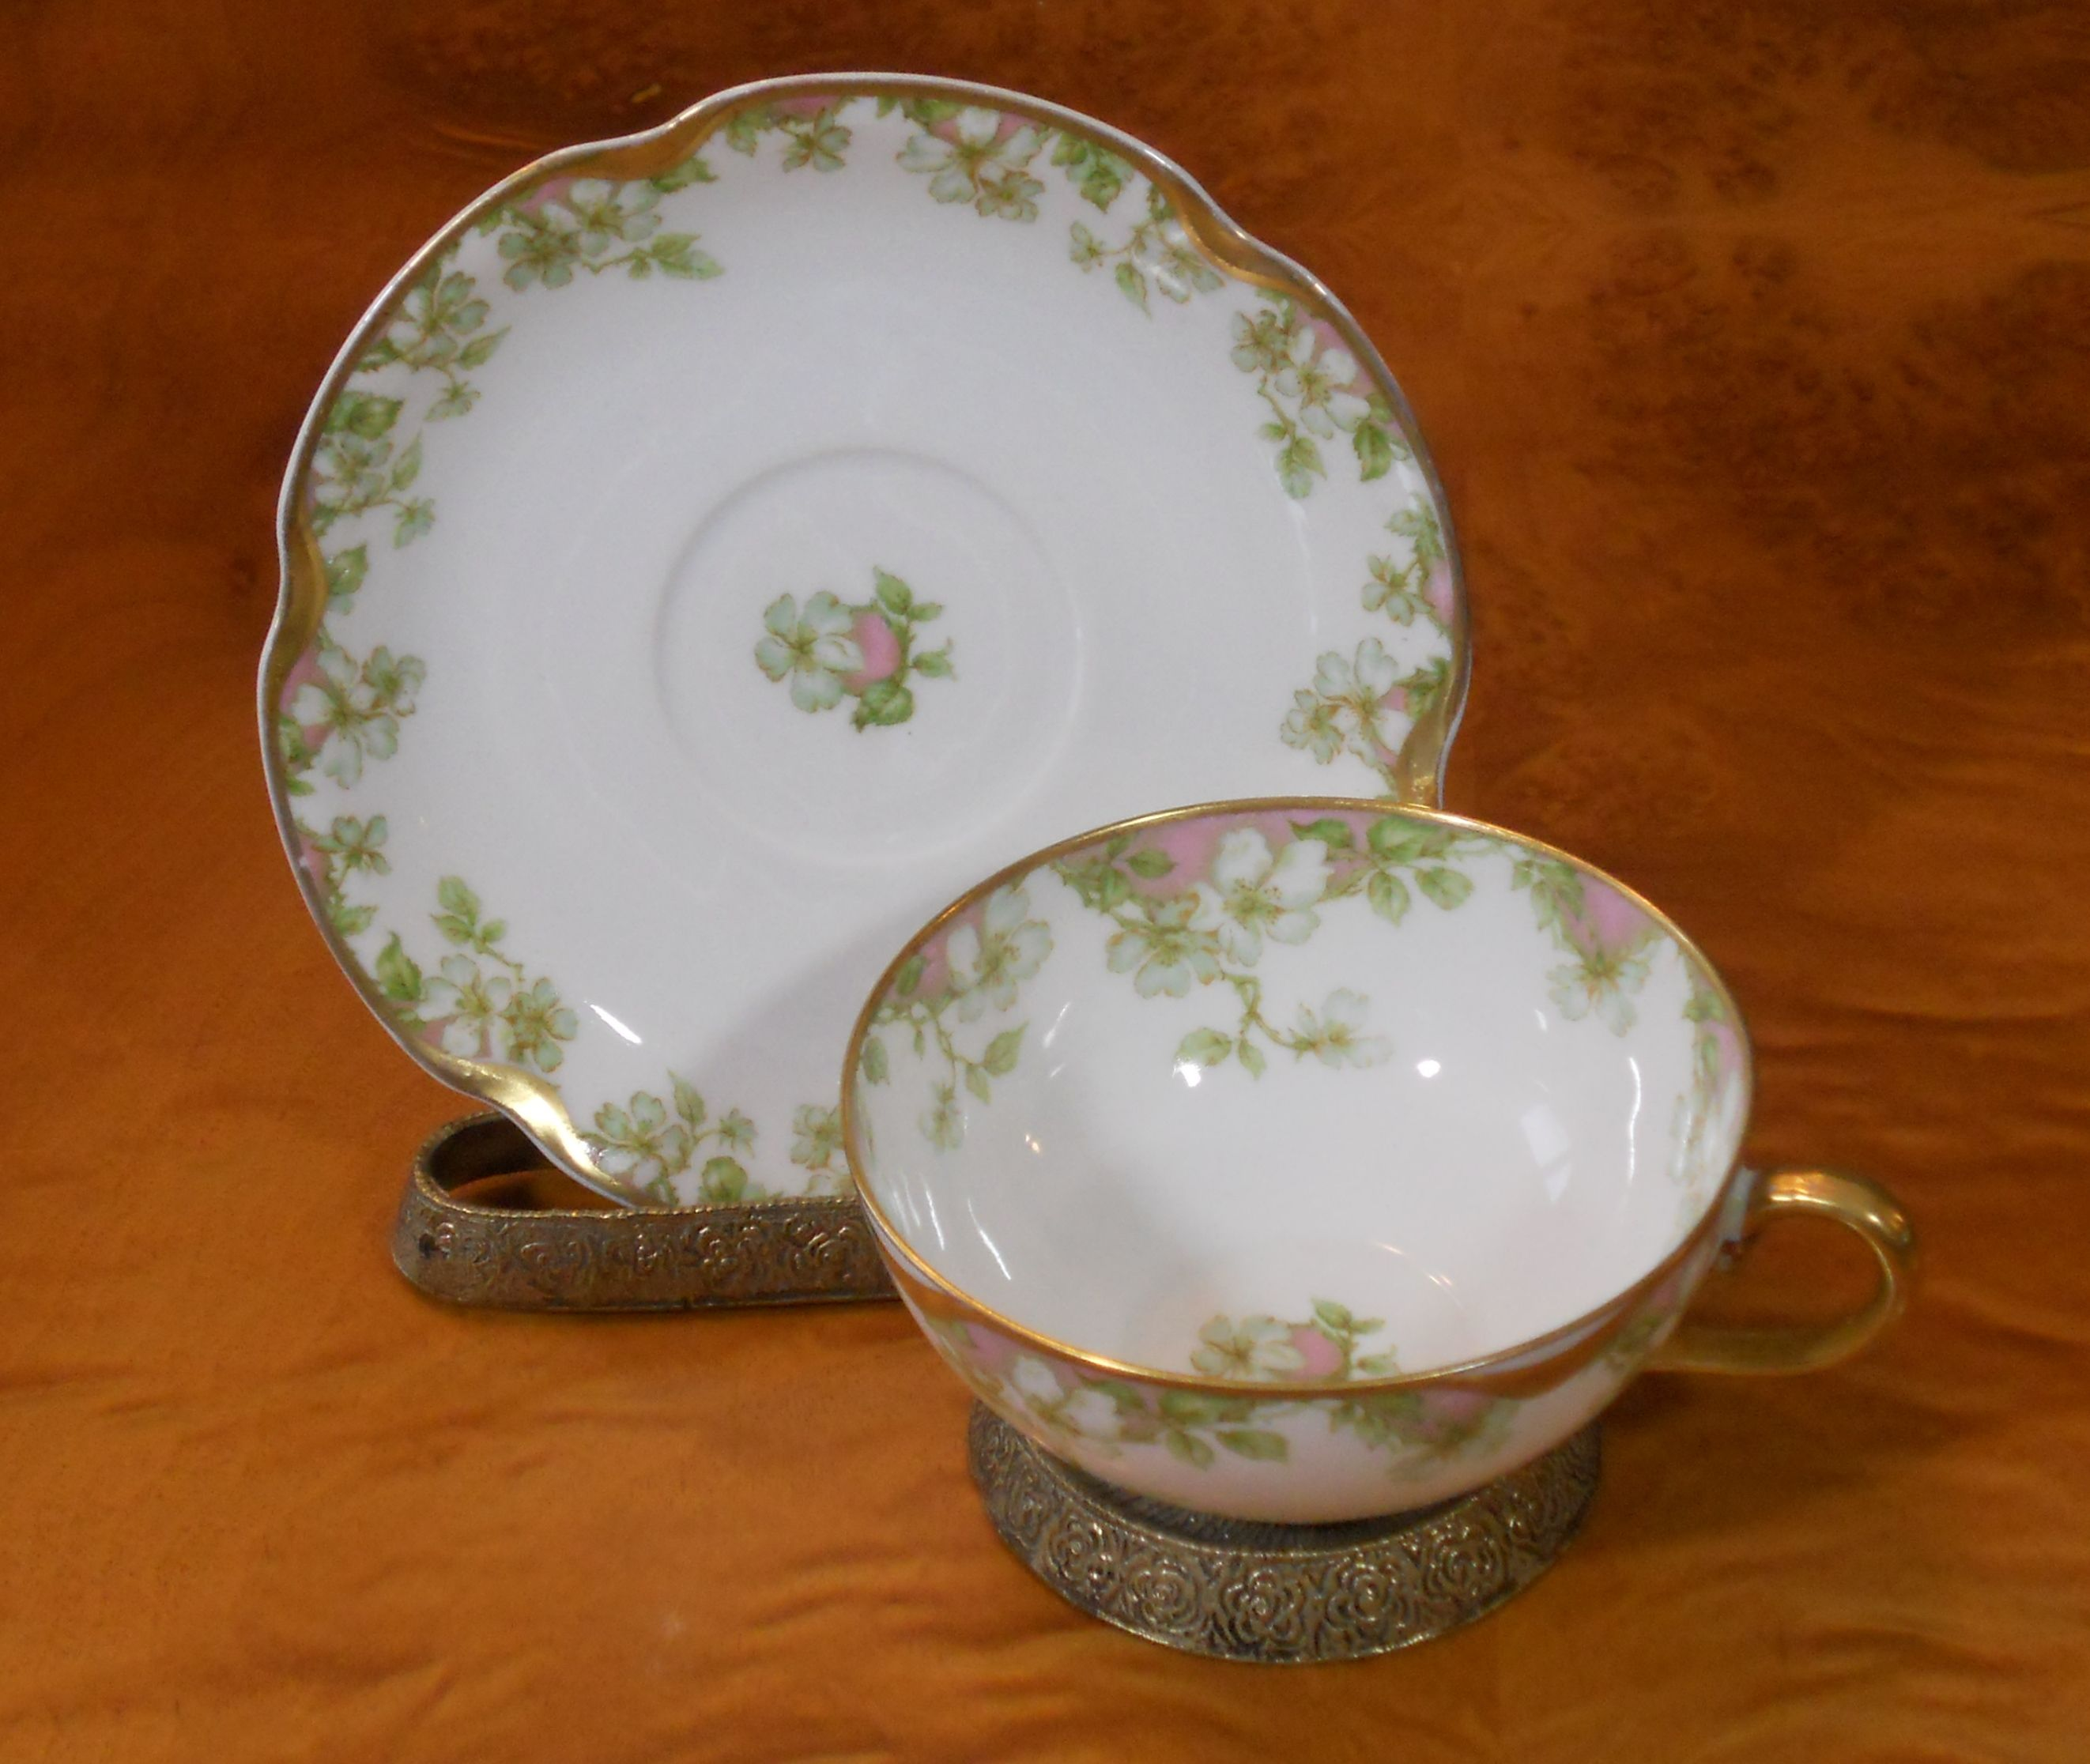 Many more matching china pieces.